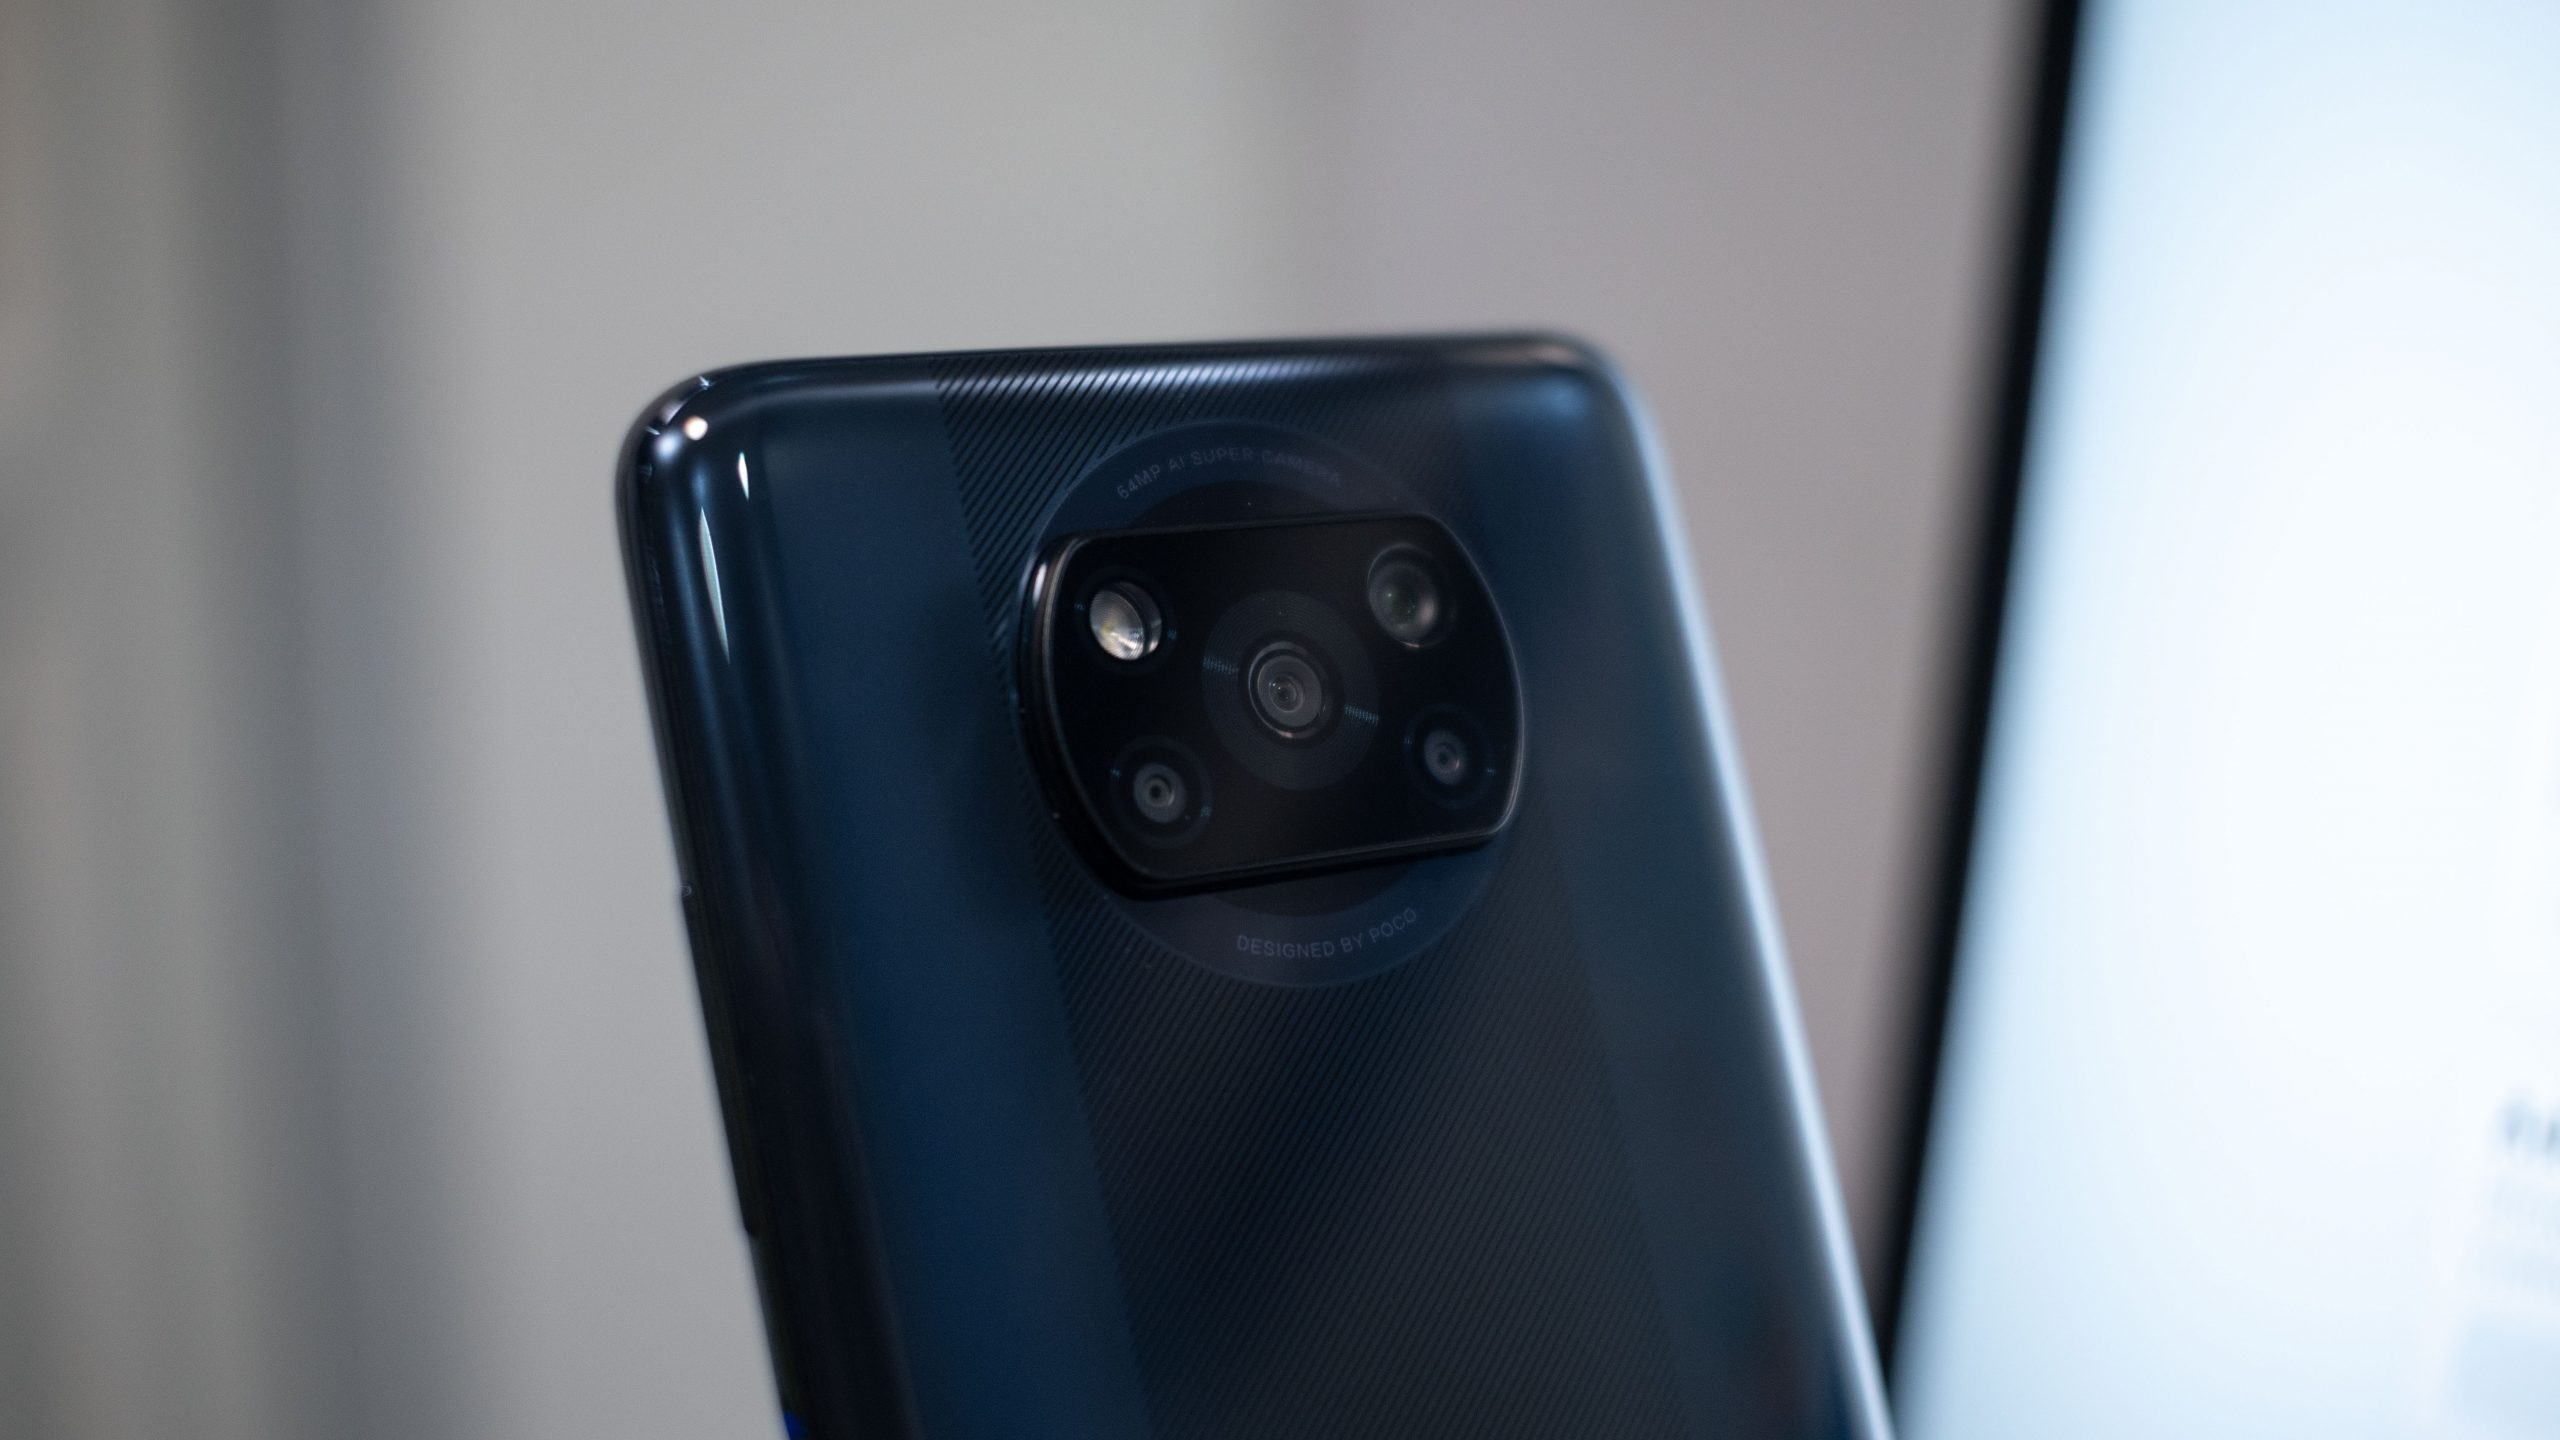 poco-x3-nfc-6-month-review-now-a-bad-purchase